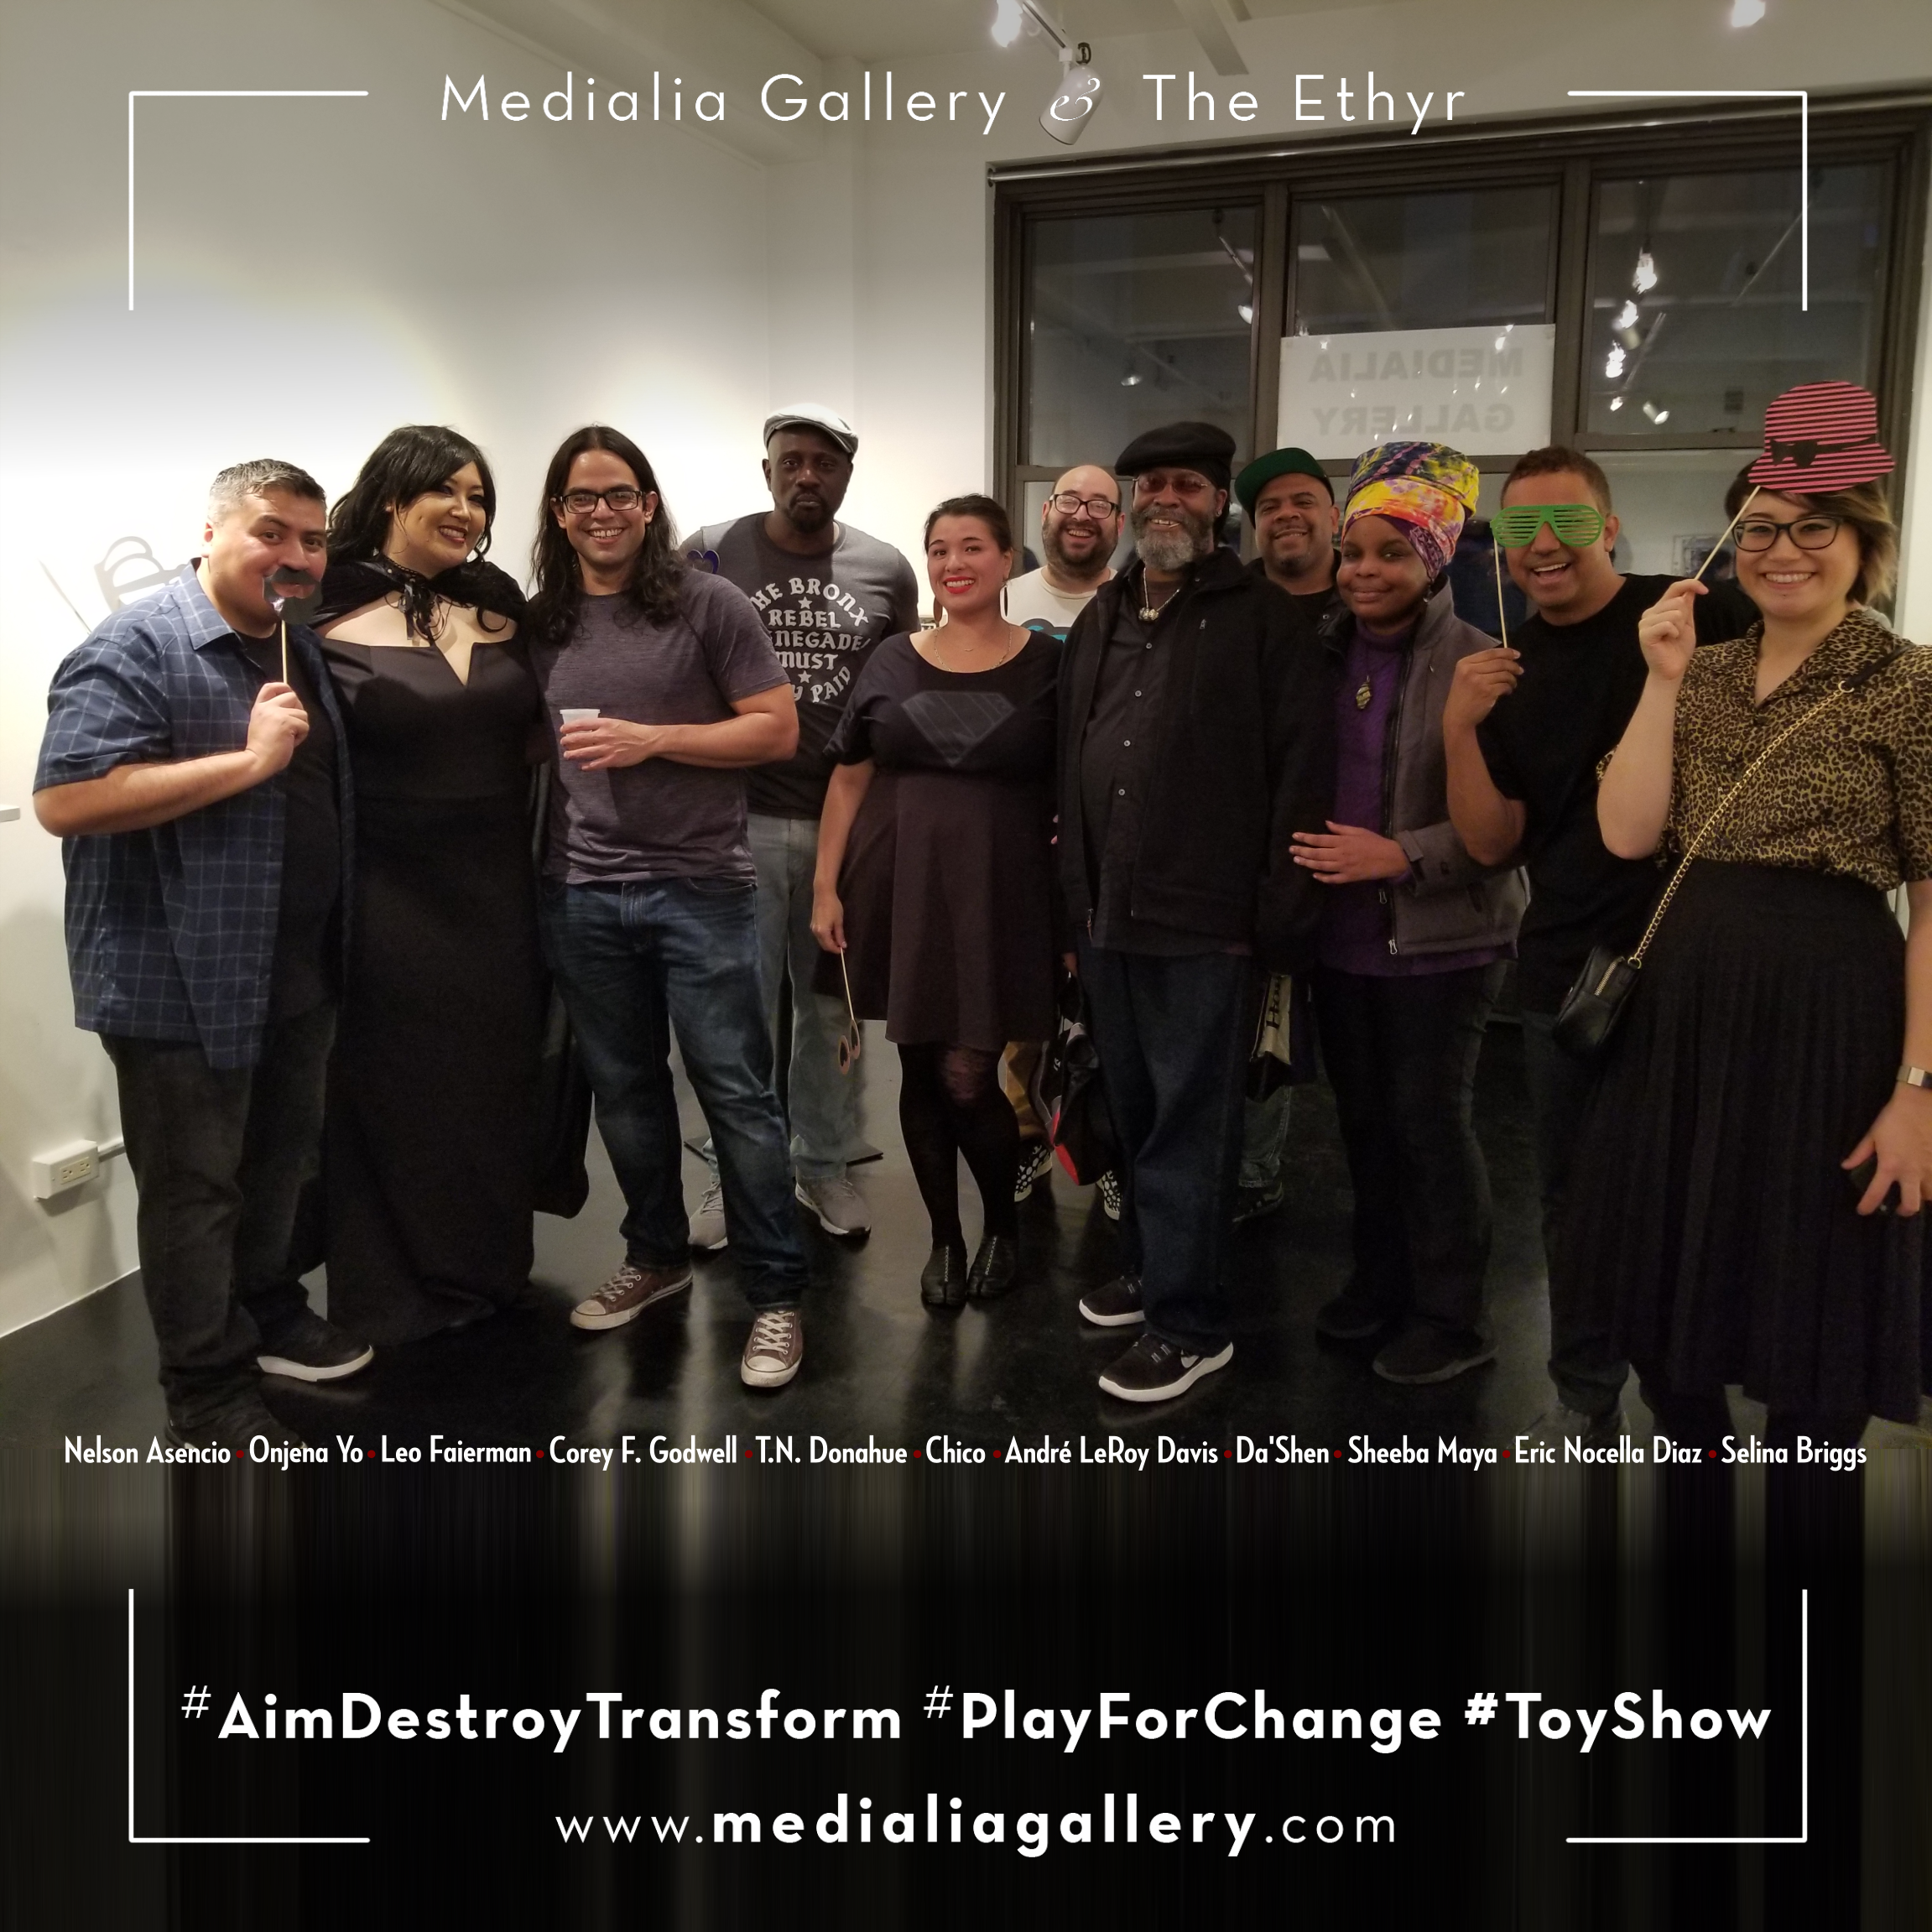 MedialiaGallery_The_Ethyr_AimDestroyTransform_Toy_Toymakers_Writers_Group_November_2017.png